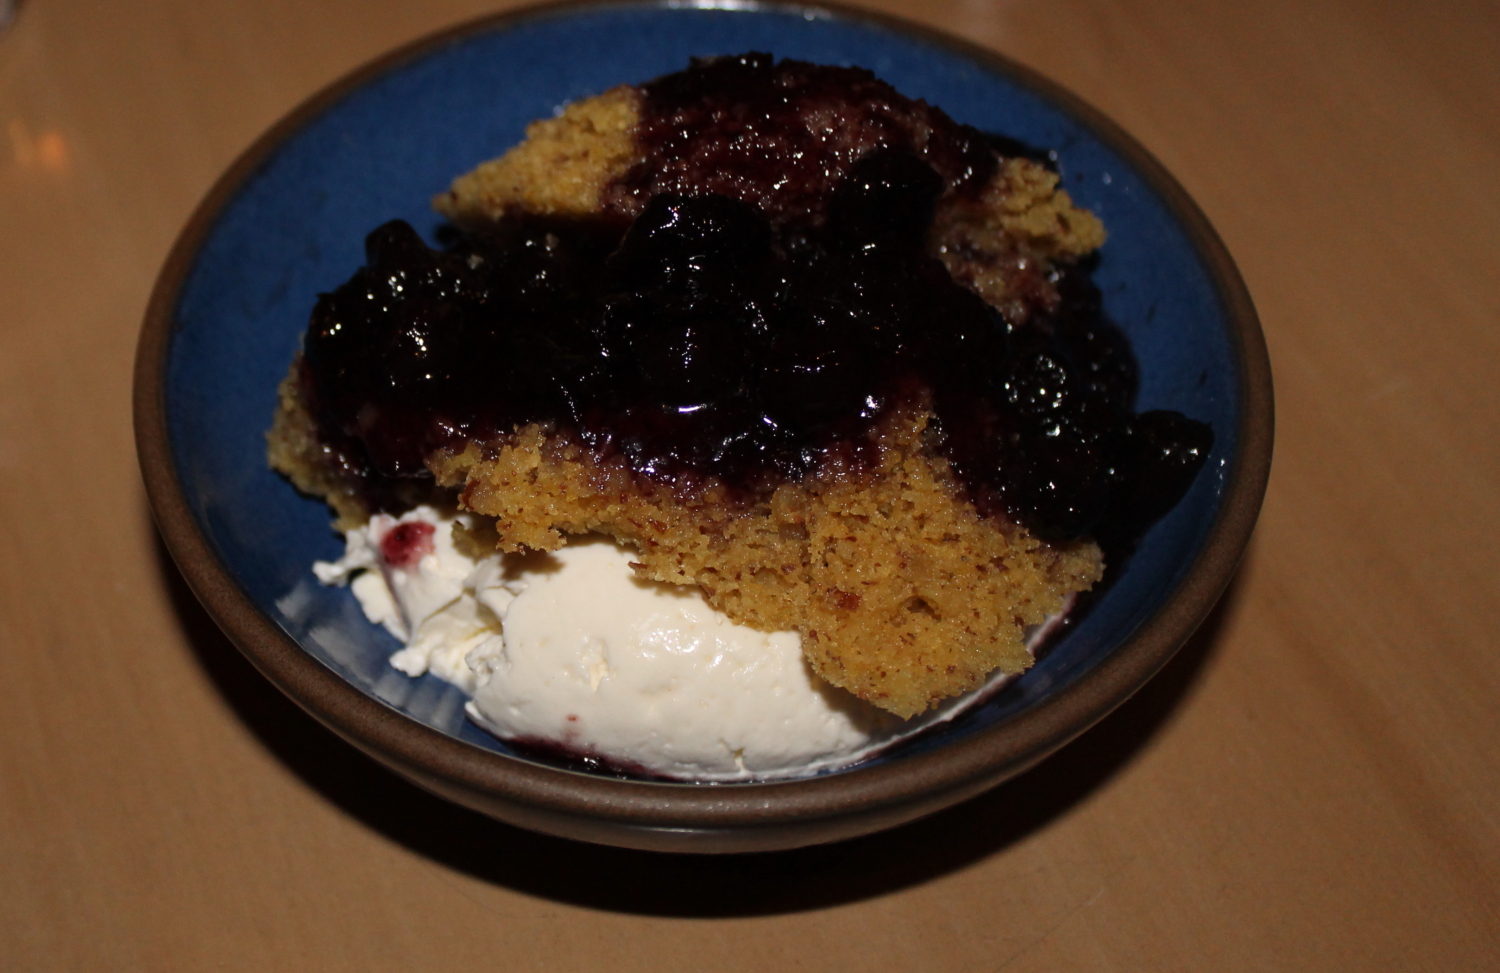 Polenta Almond Cake with Blueberries and Marscapone